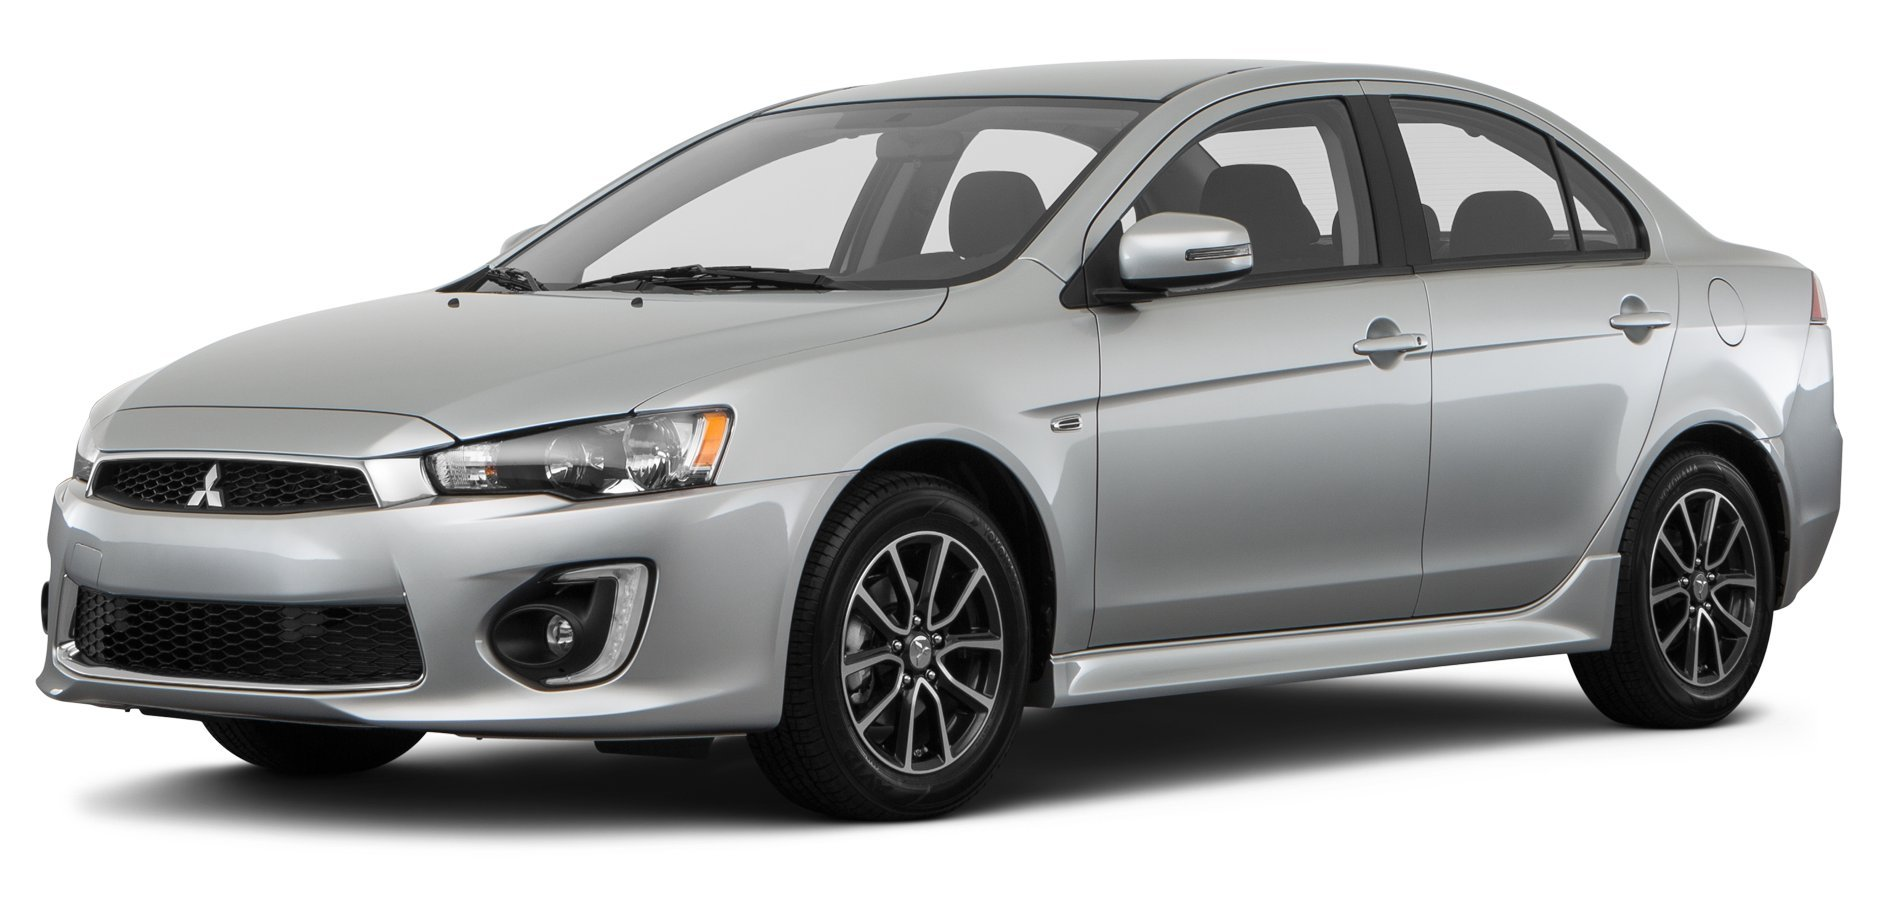 Amazon.com: 2017 Mitsubishi Lancer Reviews, Images, and